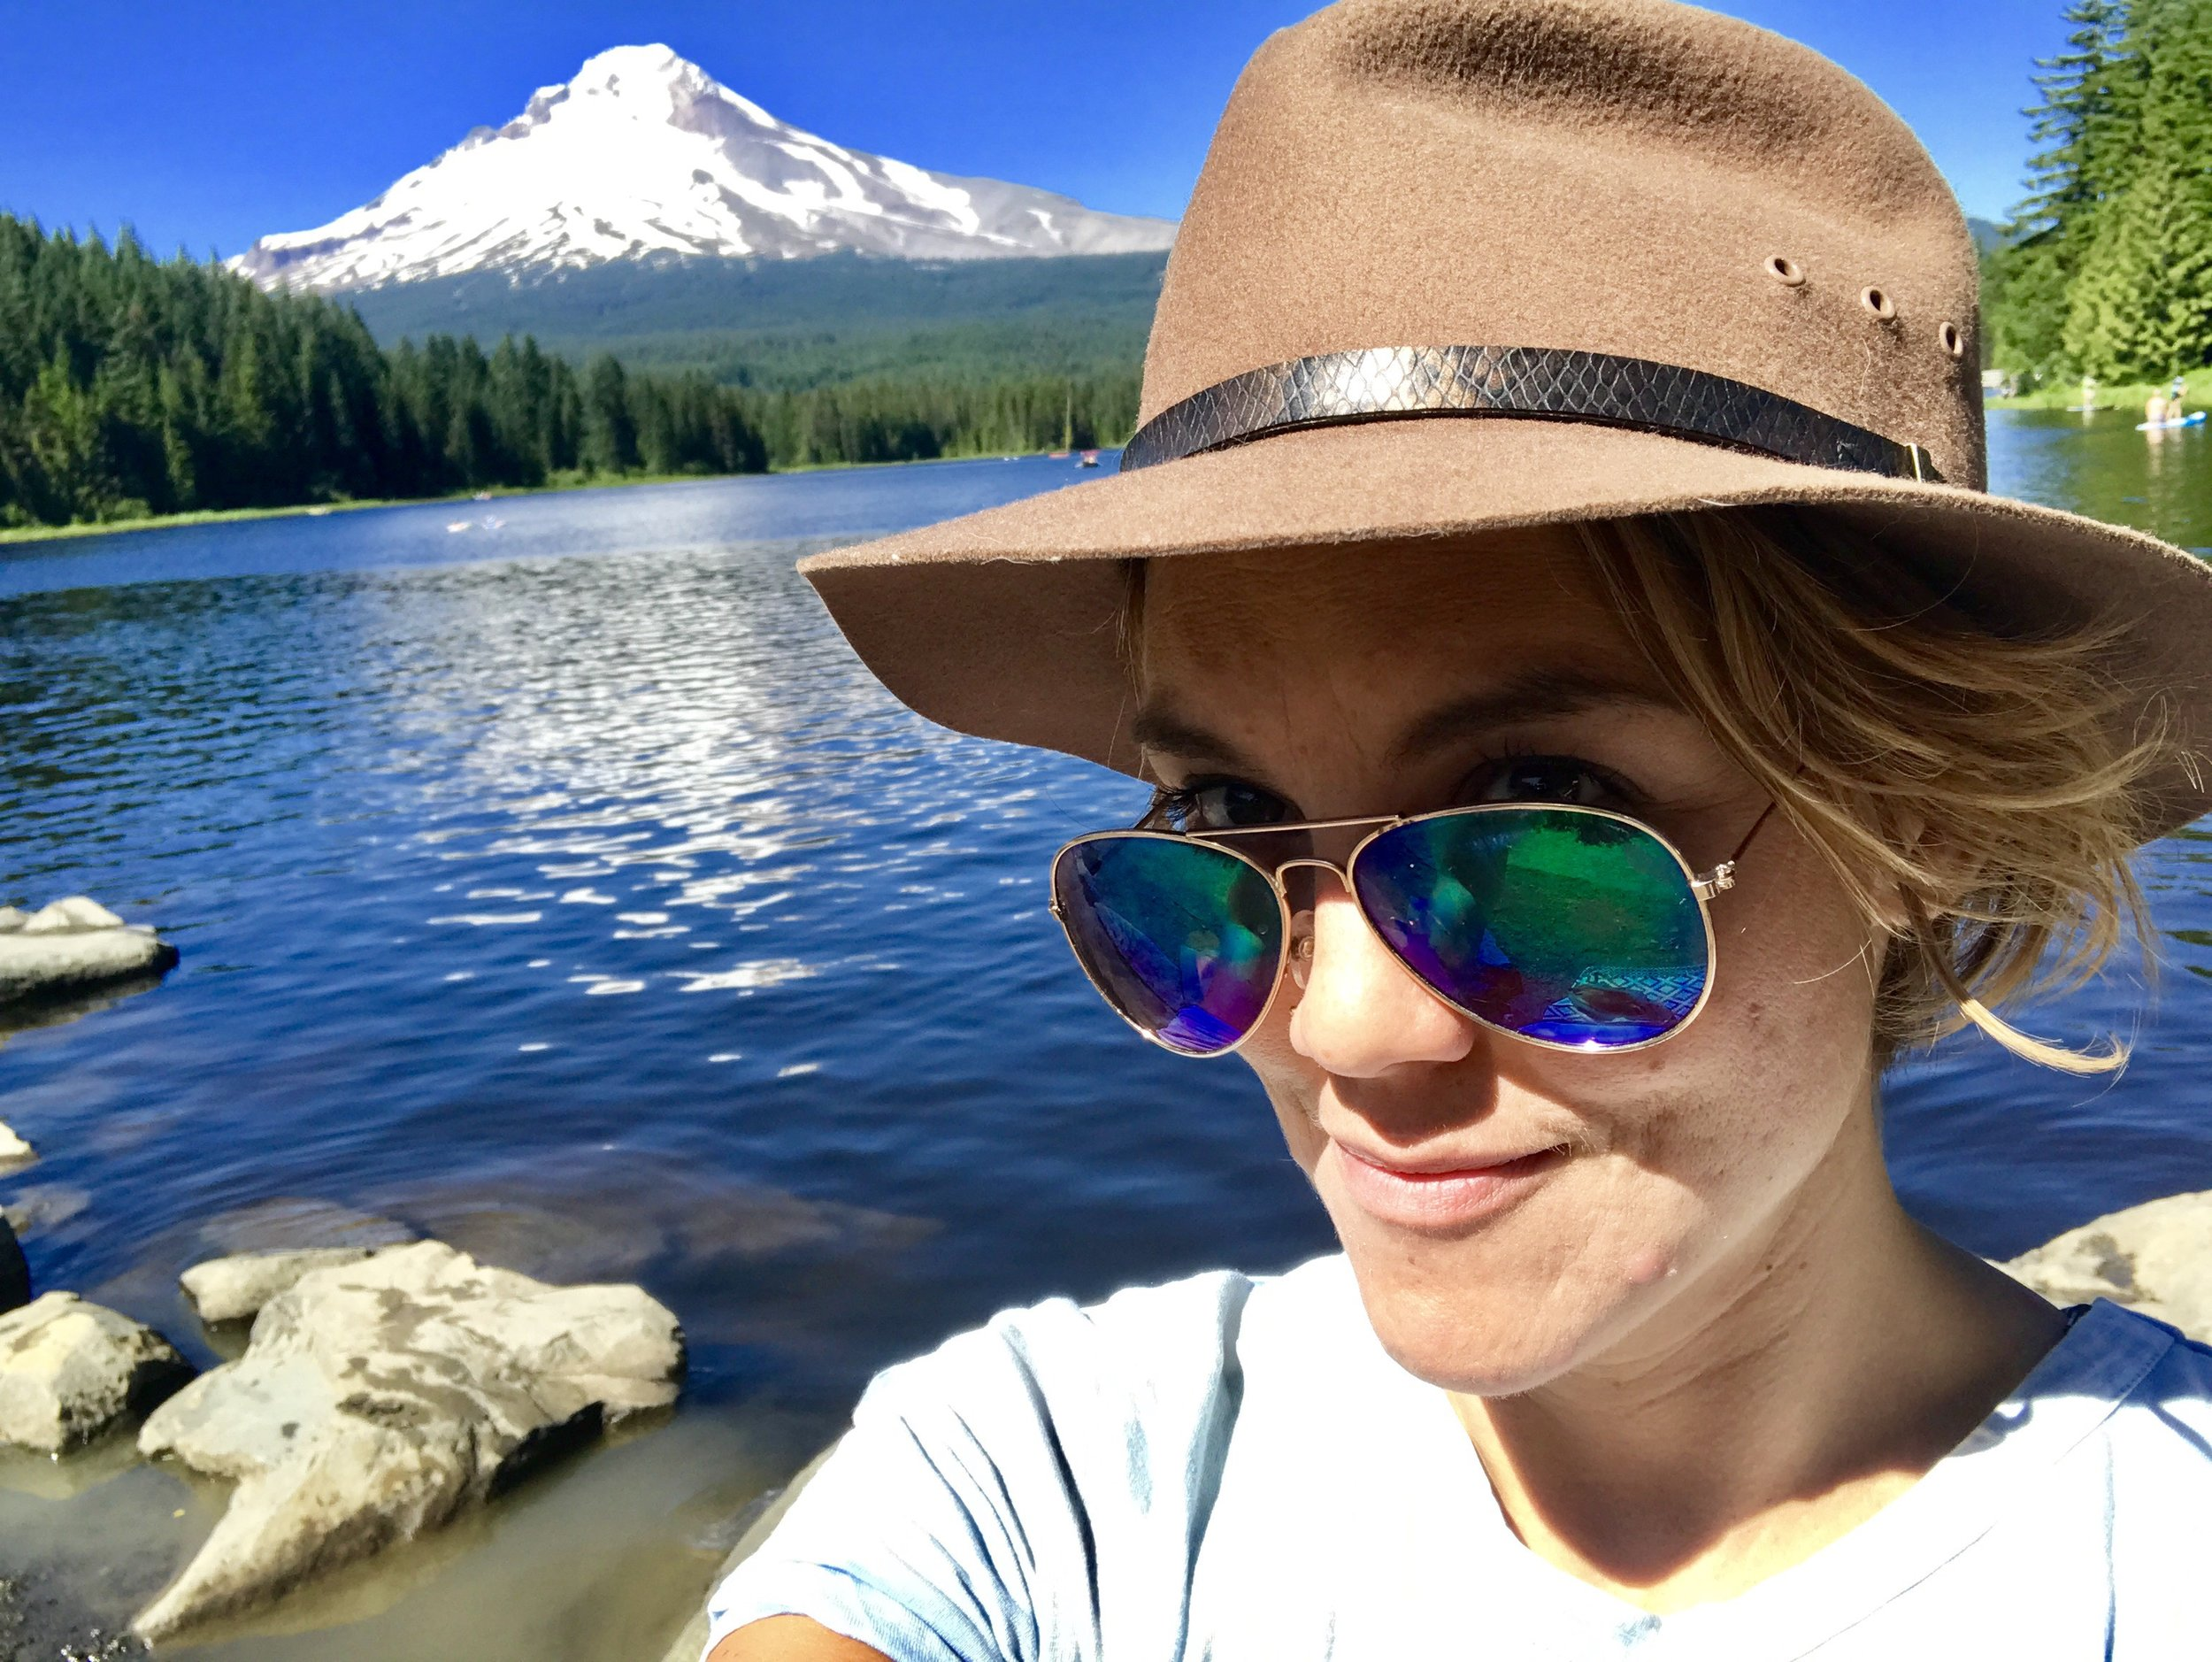 Little chance to explore Oregon, in between study sessions! Here I am at Trillium Lake, with a stunning view of Mt. Hood.